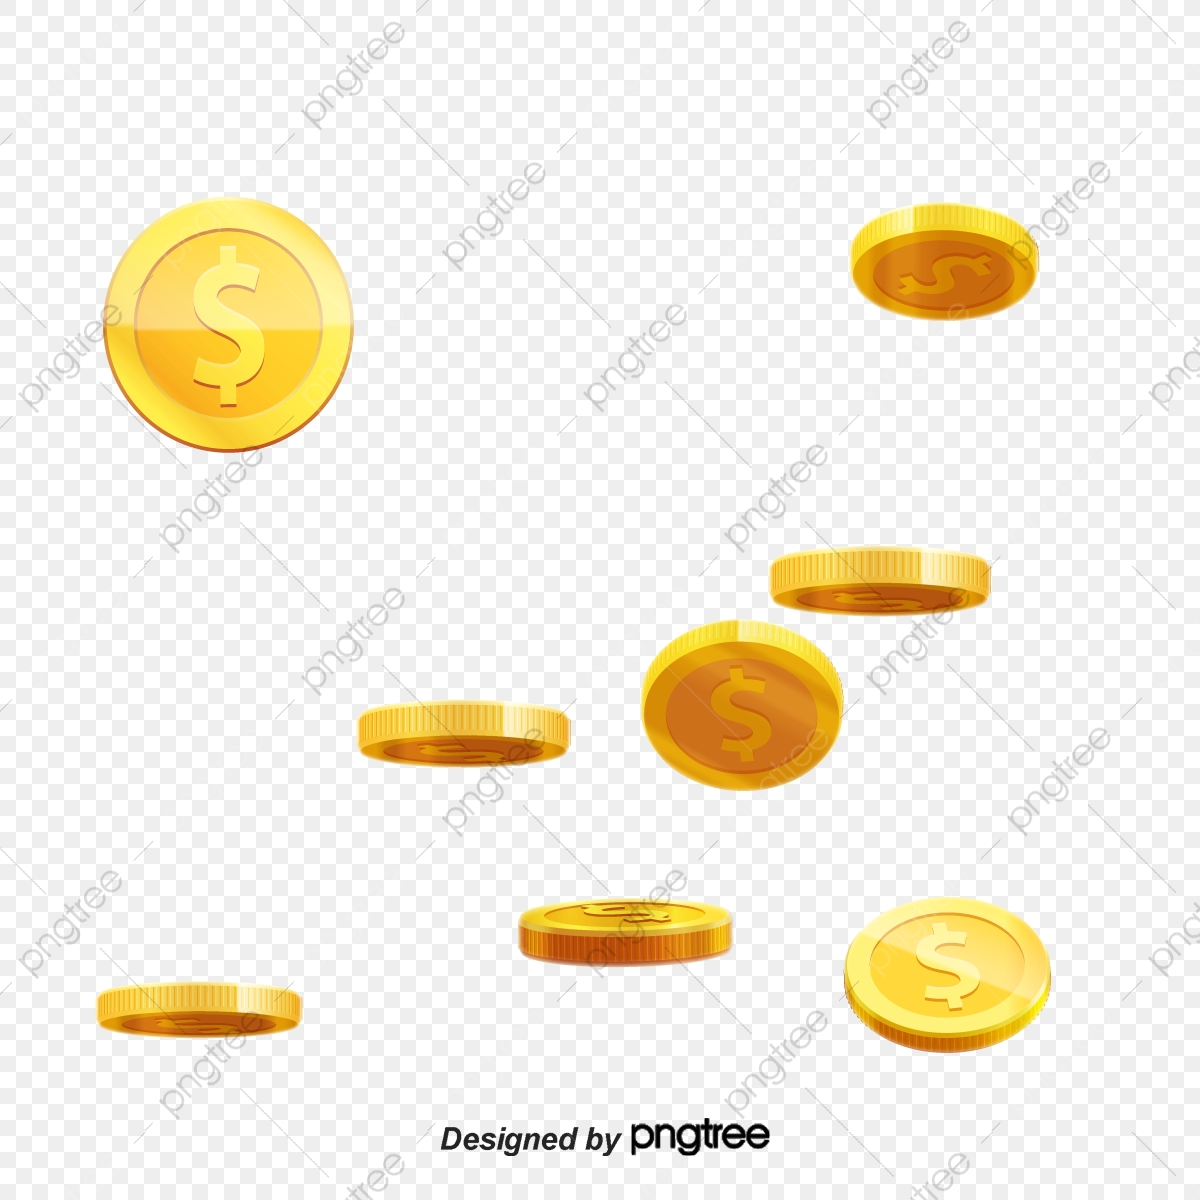 Floating gold material money. Coin clipart vector